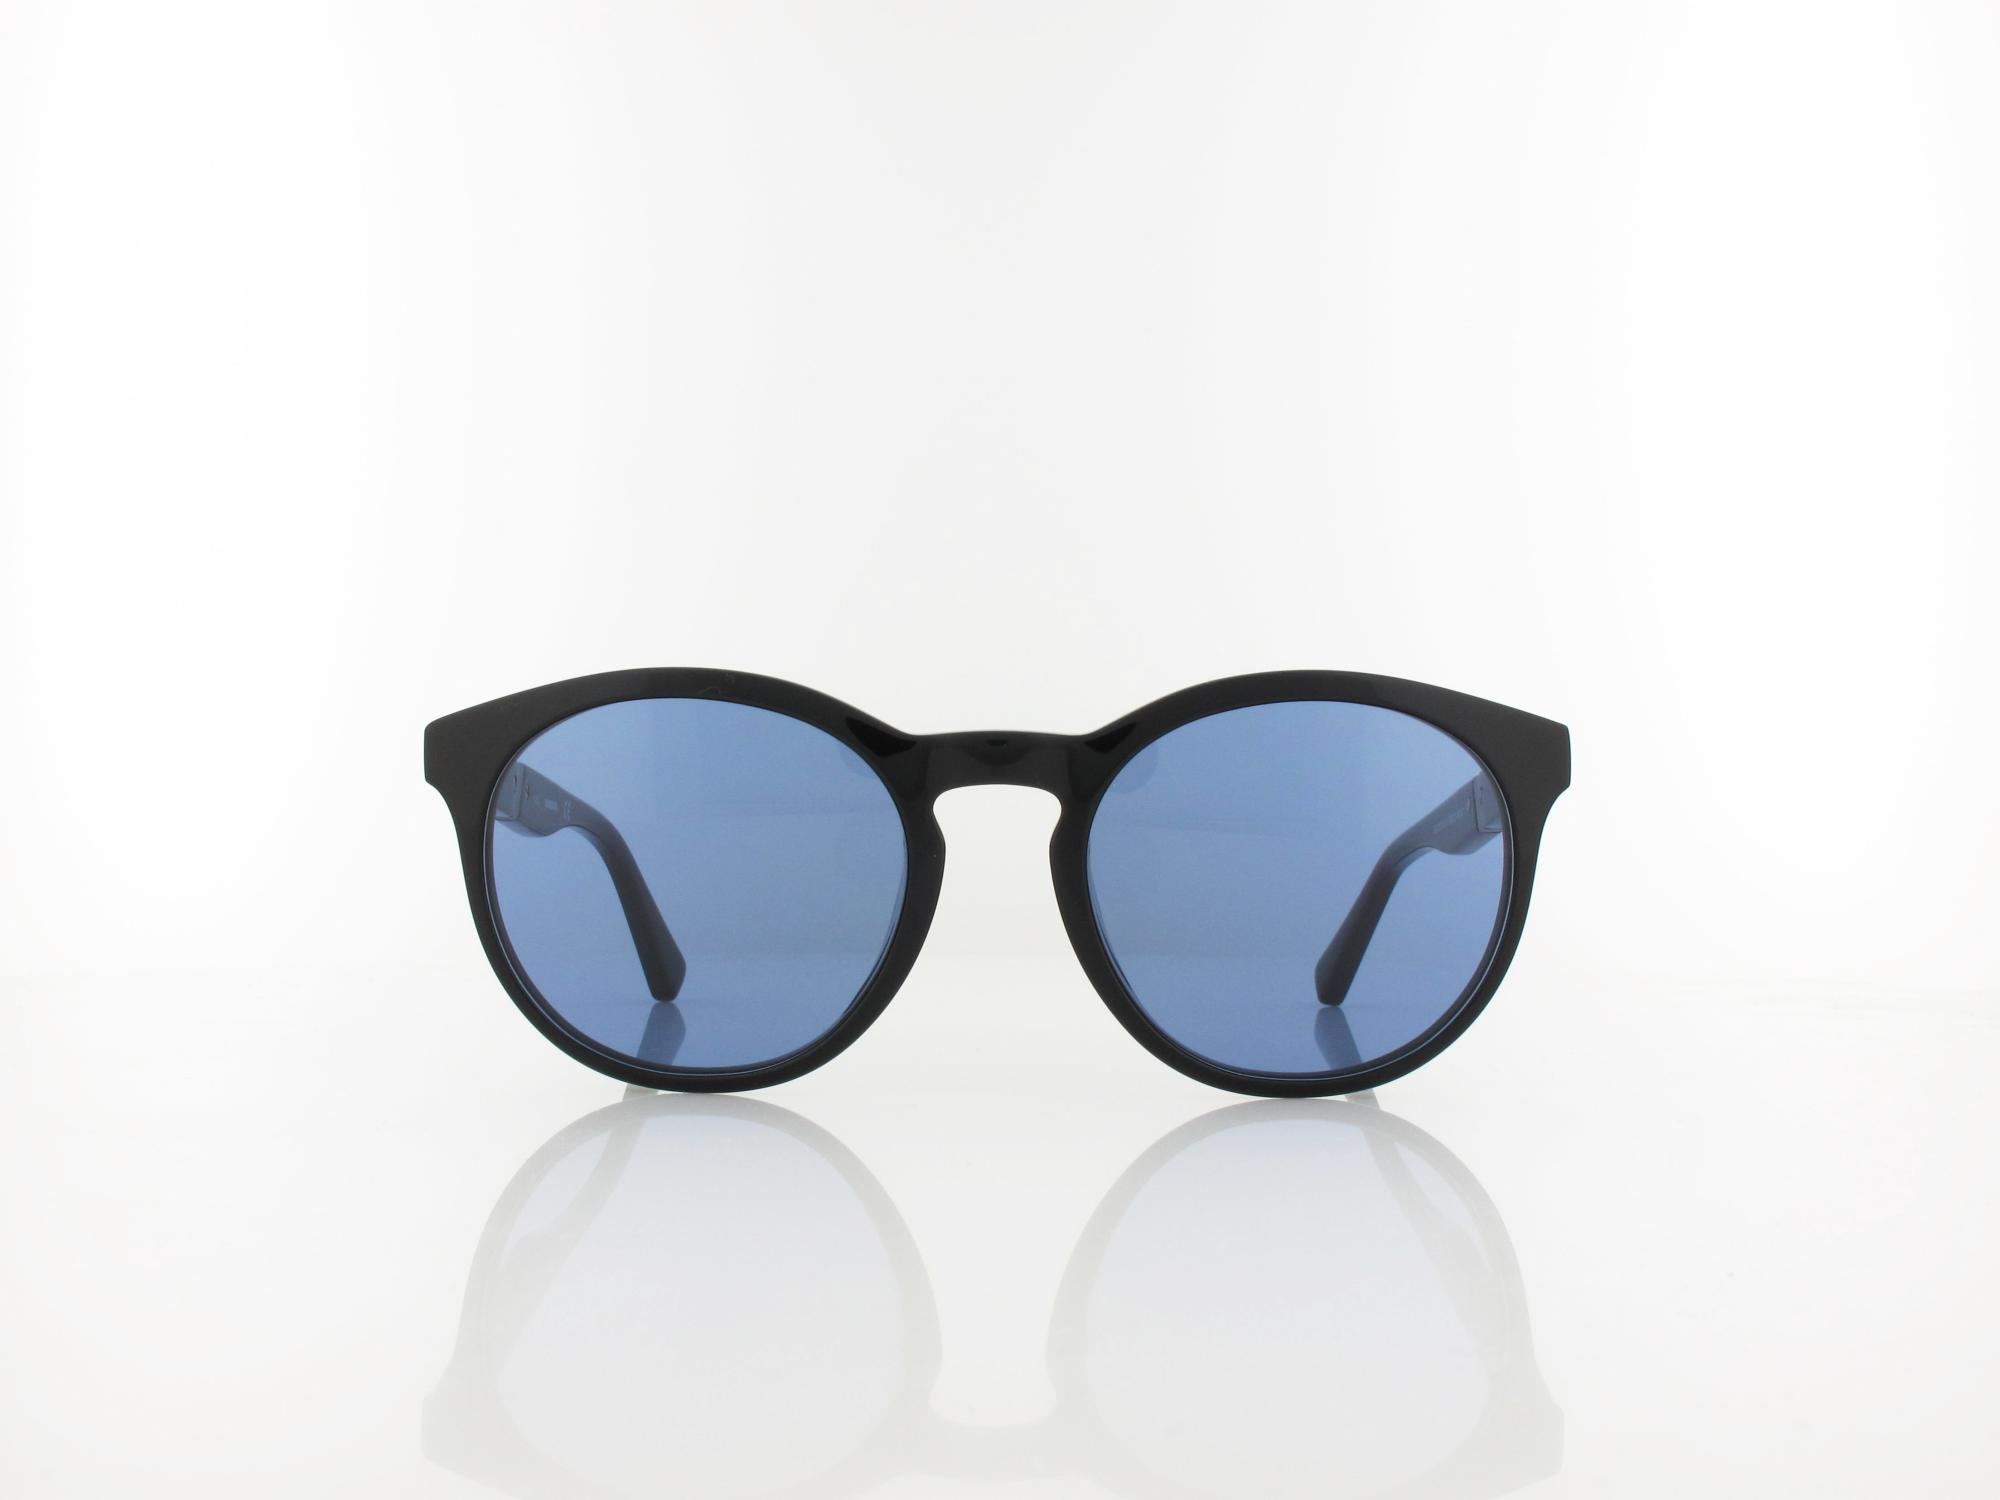 Diesel | DL0310/S 01V 53 | shiny black / blue